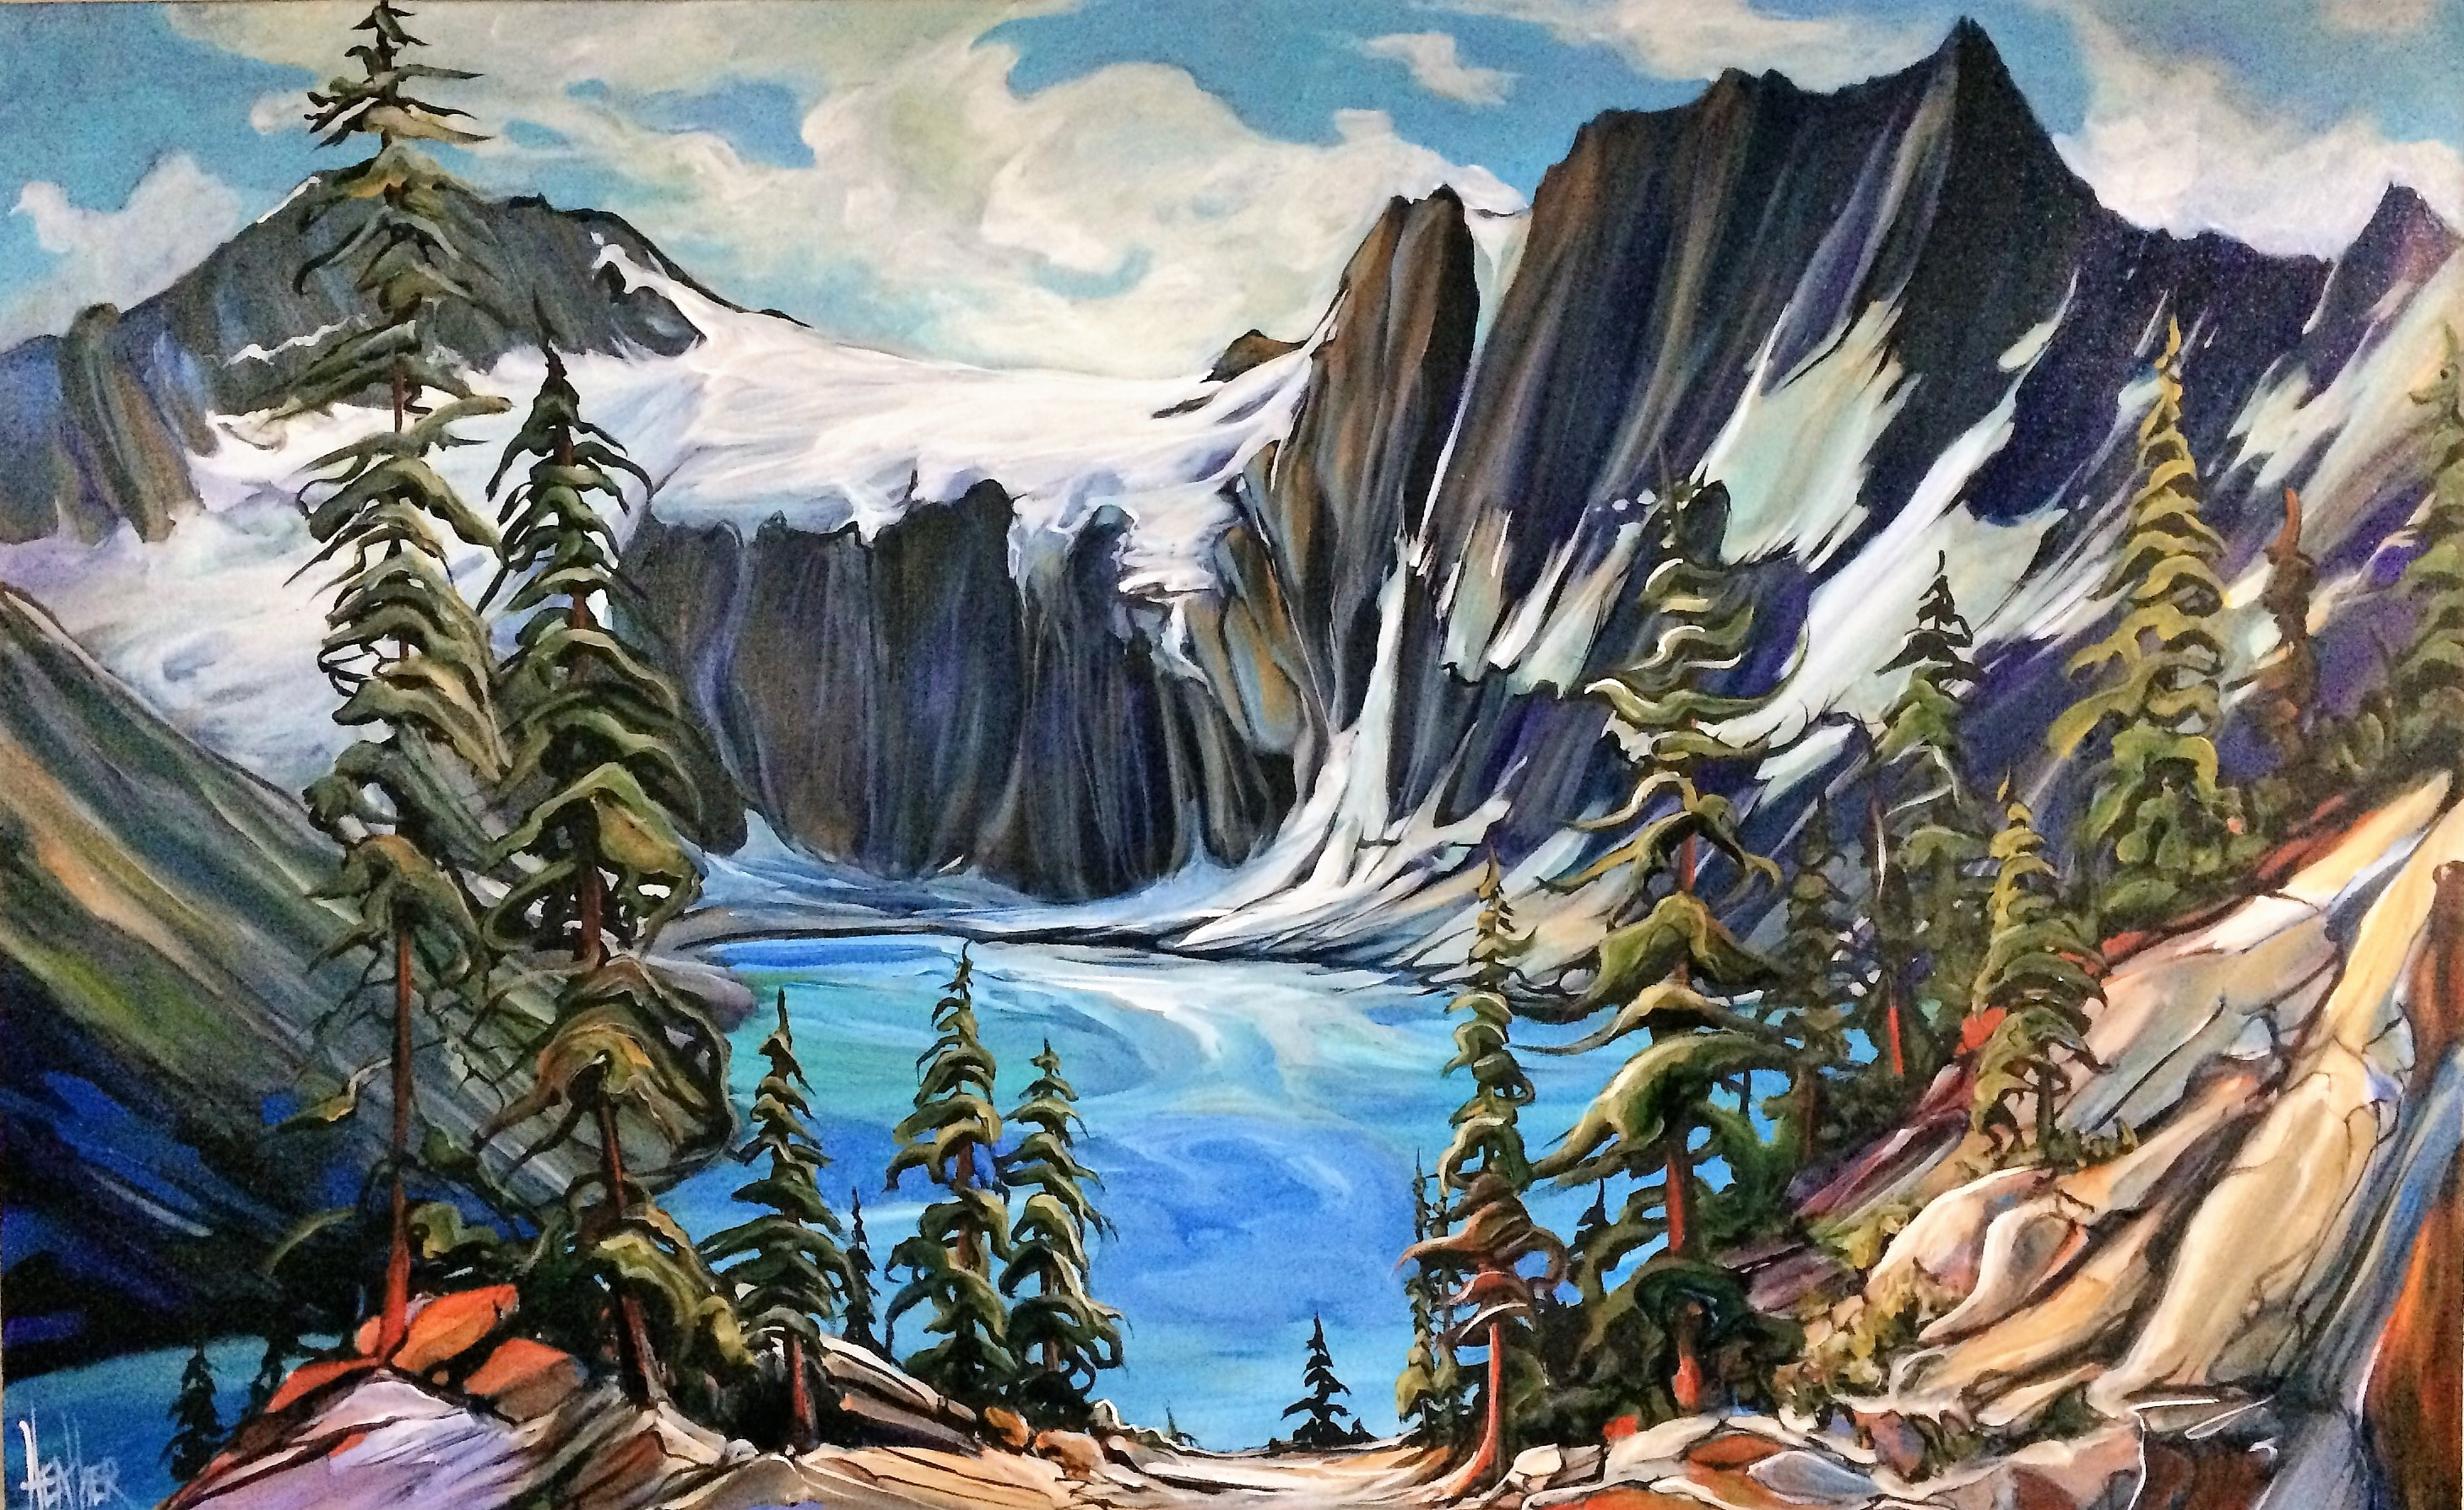 Lake of the Hanging Glacier 30 x 48